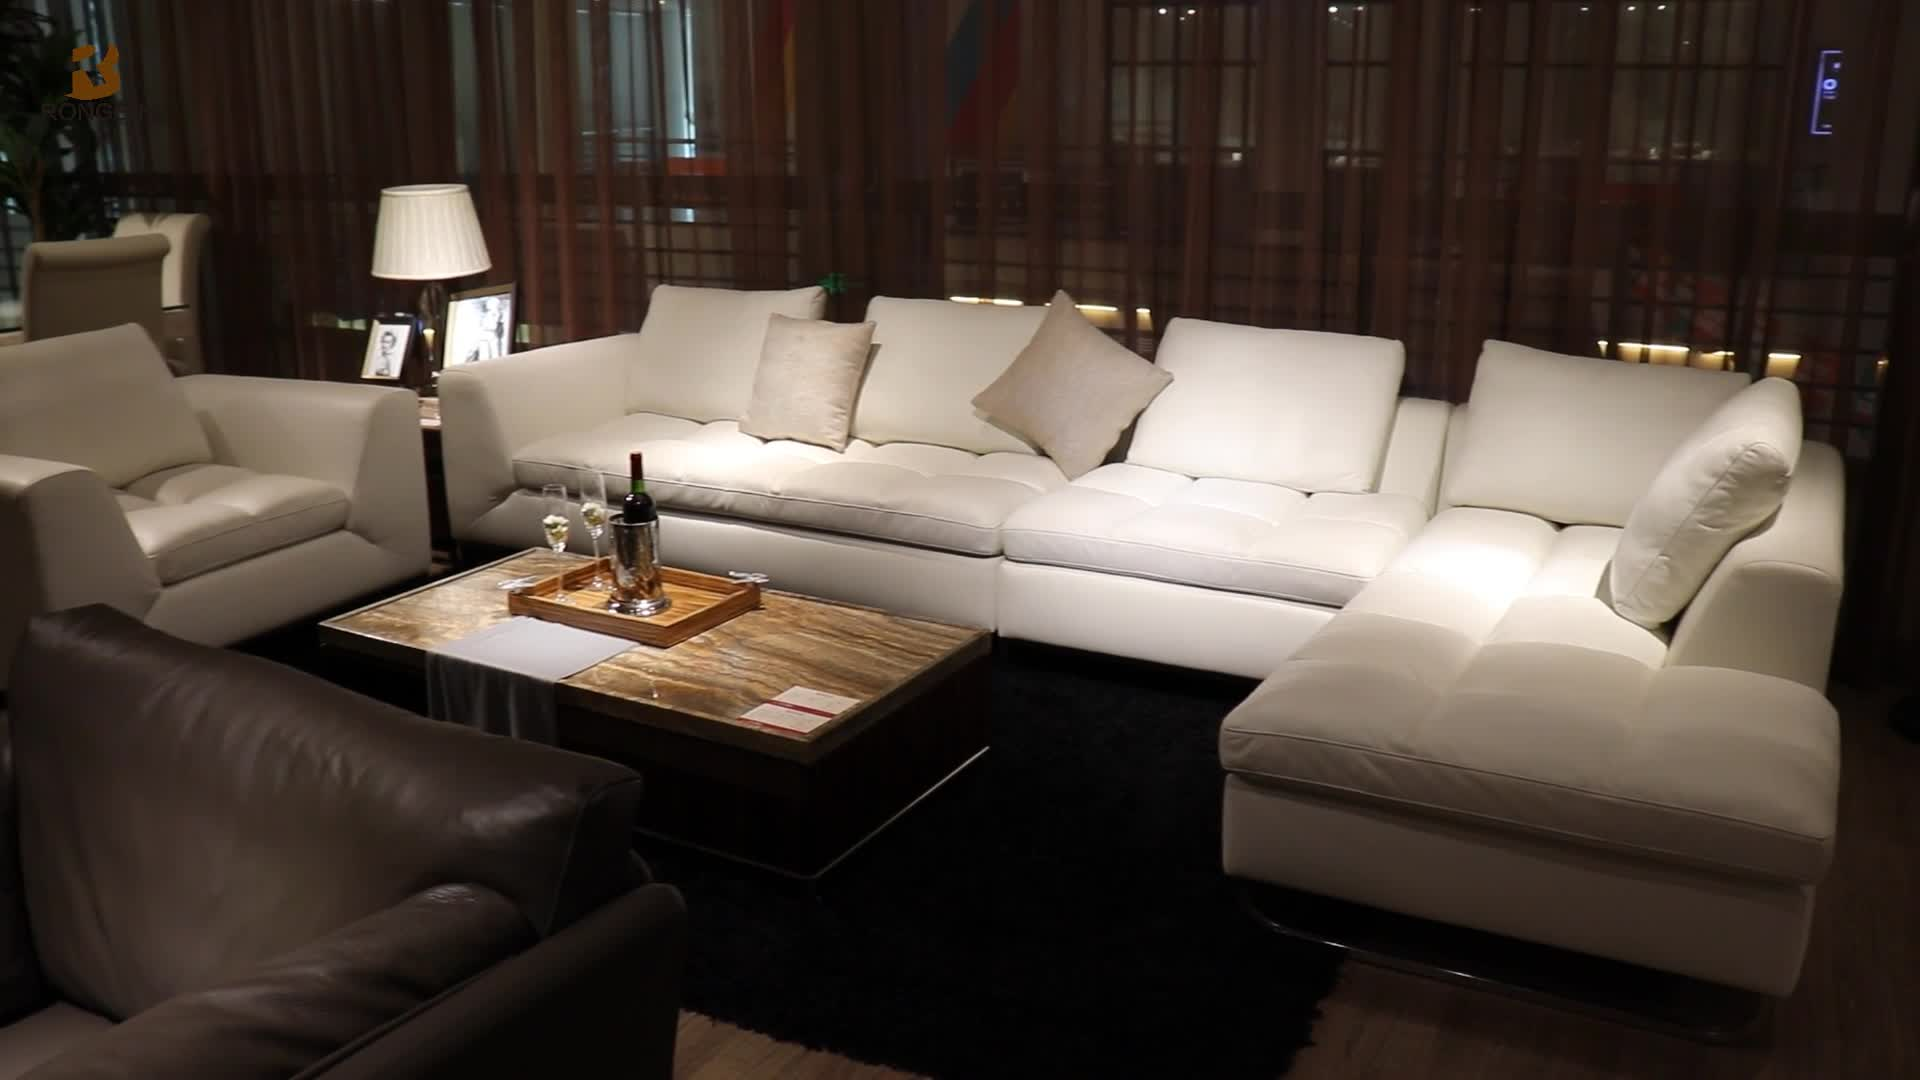 sofa come bed design with low price arne jacobsen latest tufted arab luxury restaurant alibaba